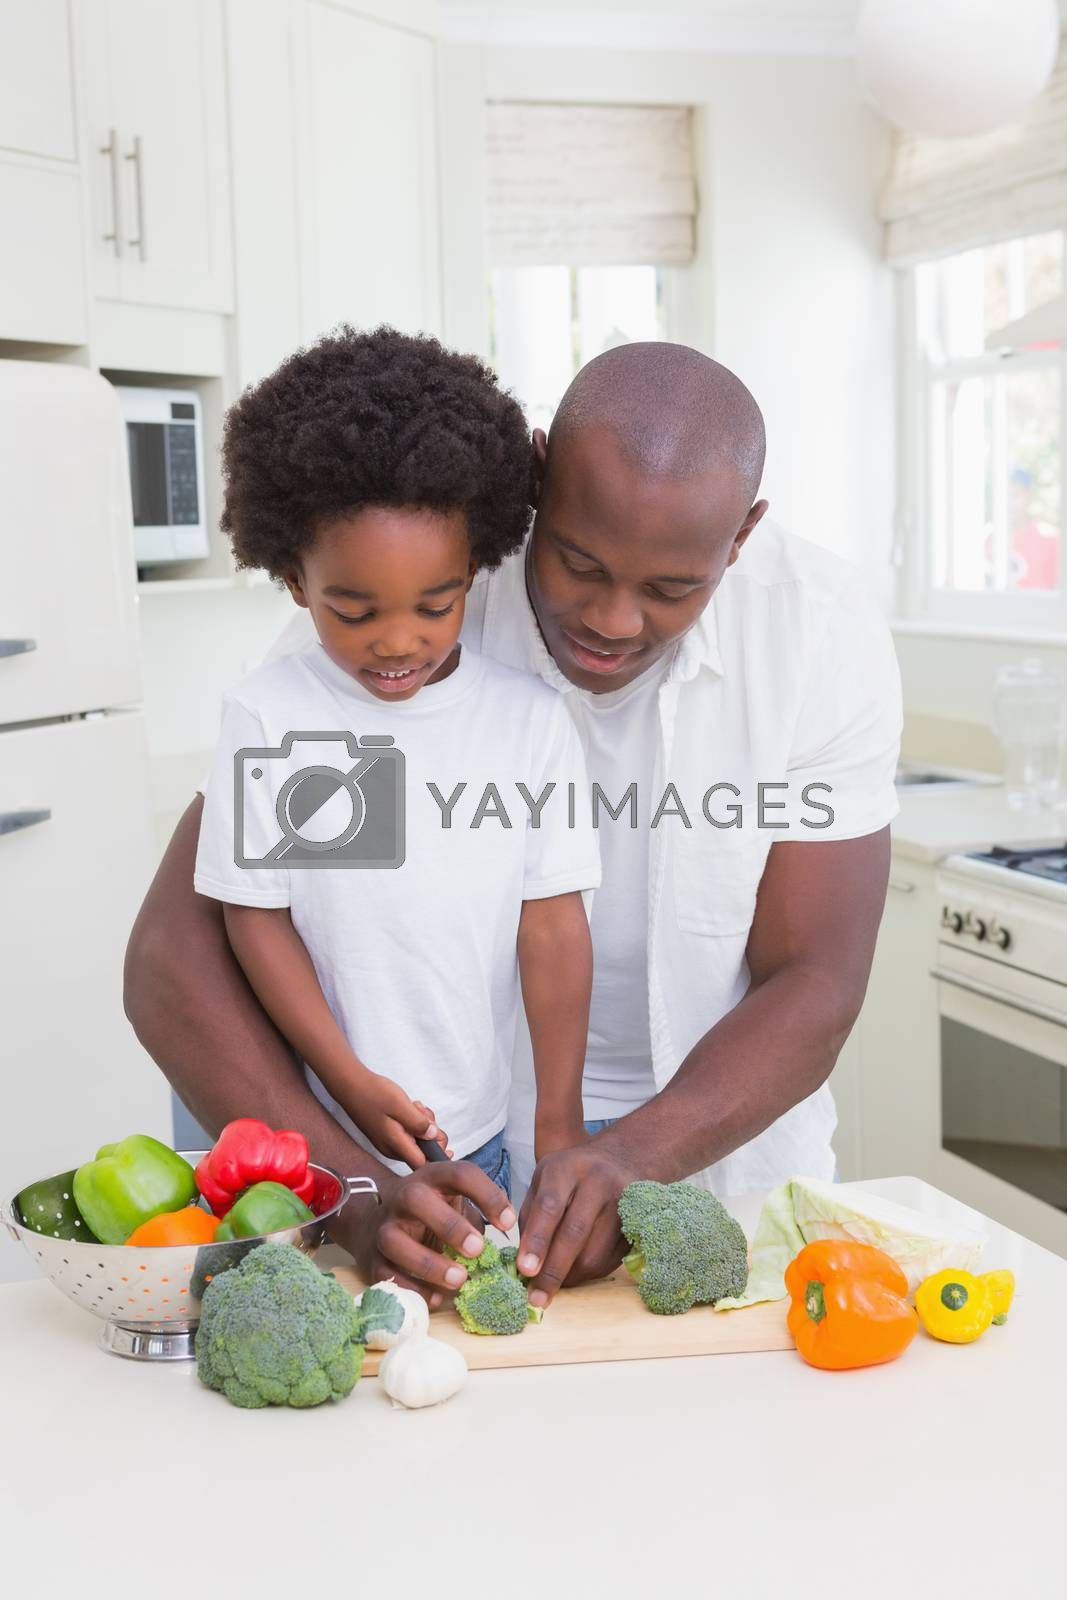 Royalty free image of Little boy cooking with his father by Wavebreakmedia